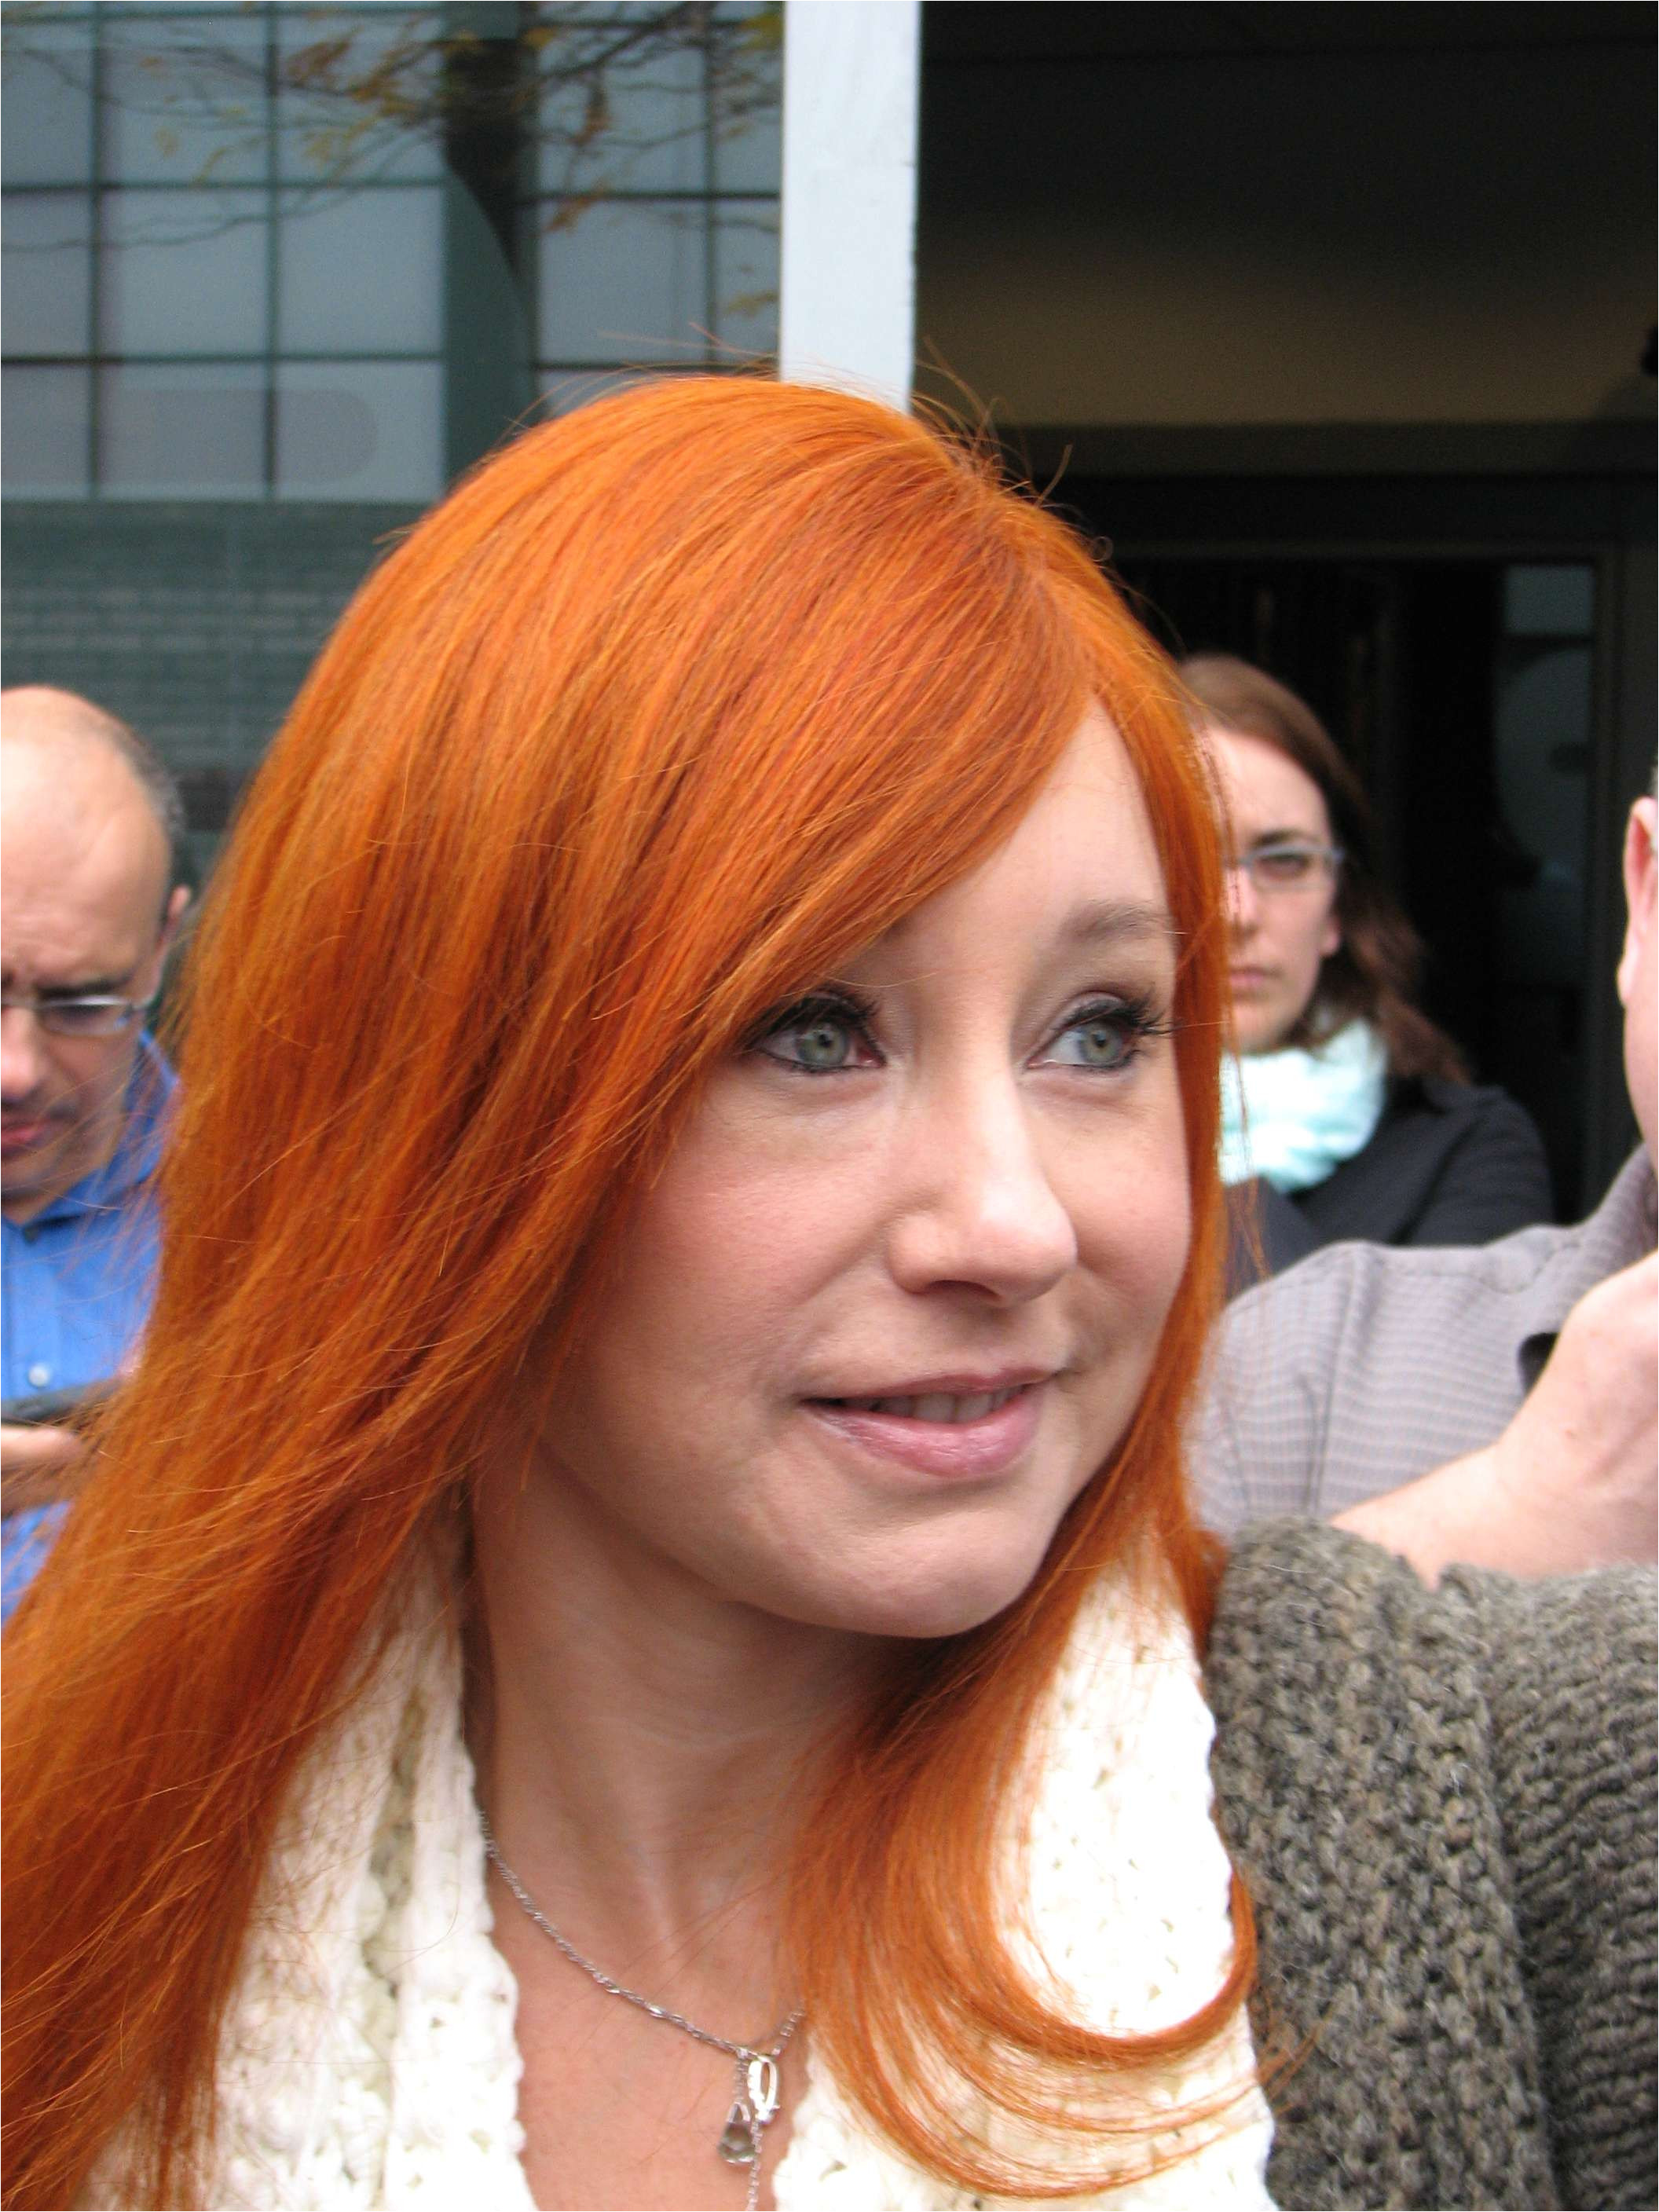 Opal Hair Inspiration According To Black Hairstyles 1995 New Tori Amos Amsterdam 0d Tori Amos Plastic